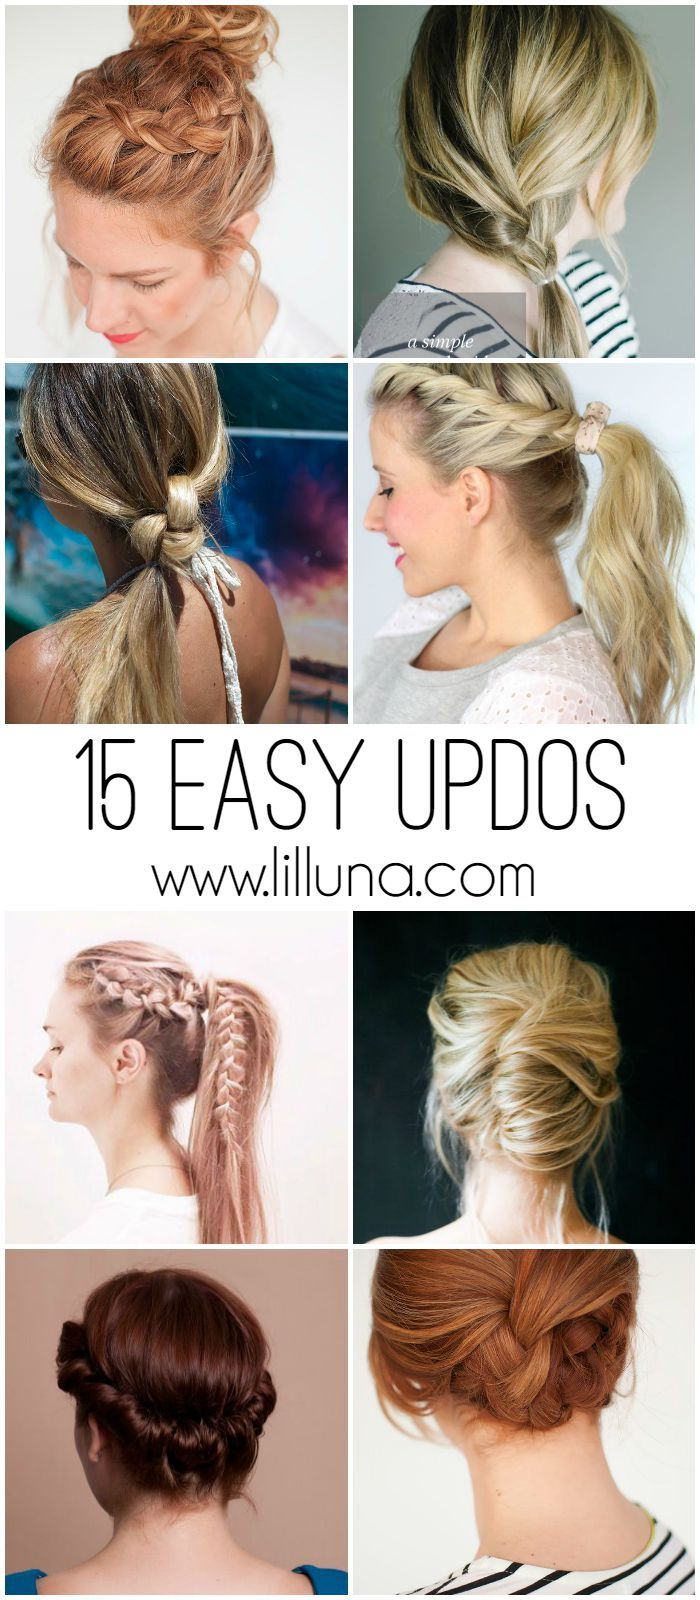 hair up styles easy 15 easy updos for all lengths and types of hair 6465 | 0f768c85cb15b8d57db58d73e8c2cd22